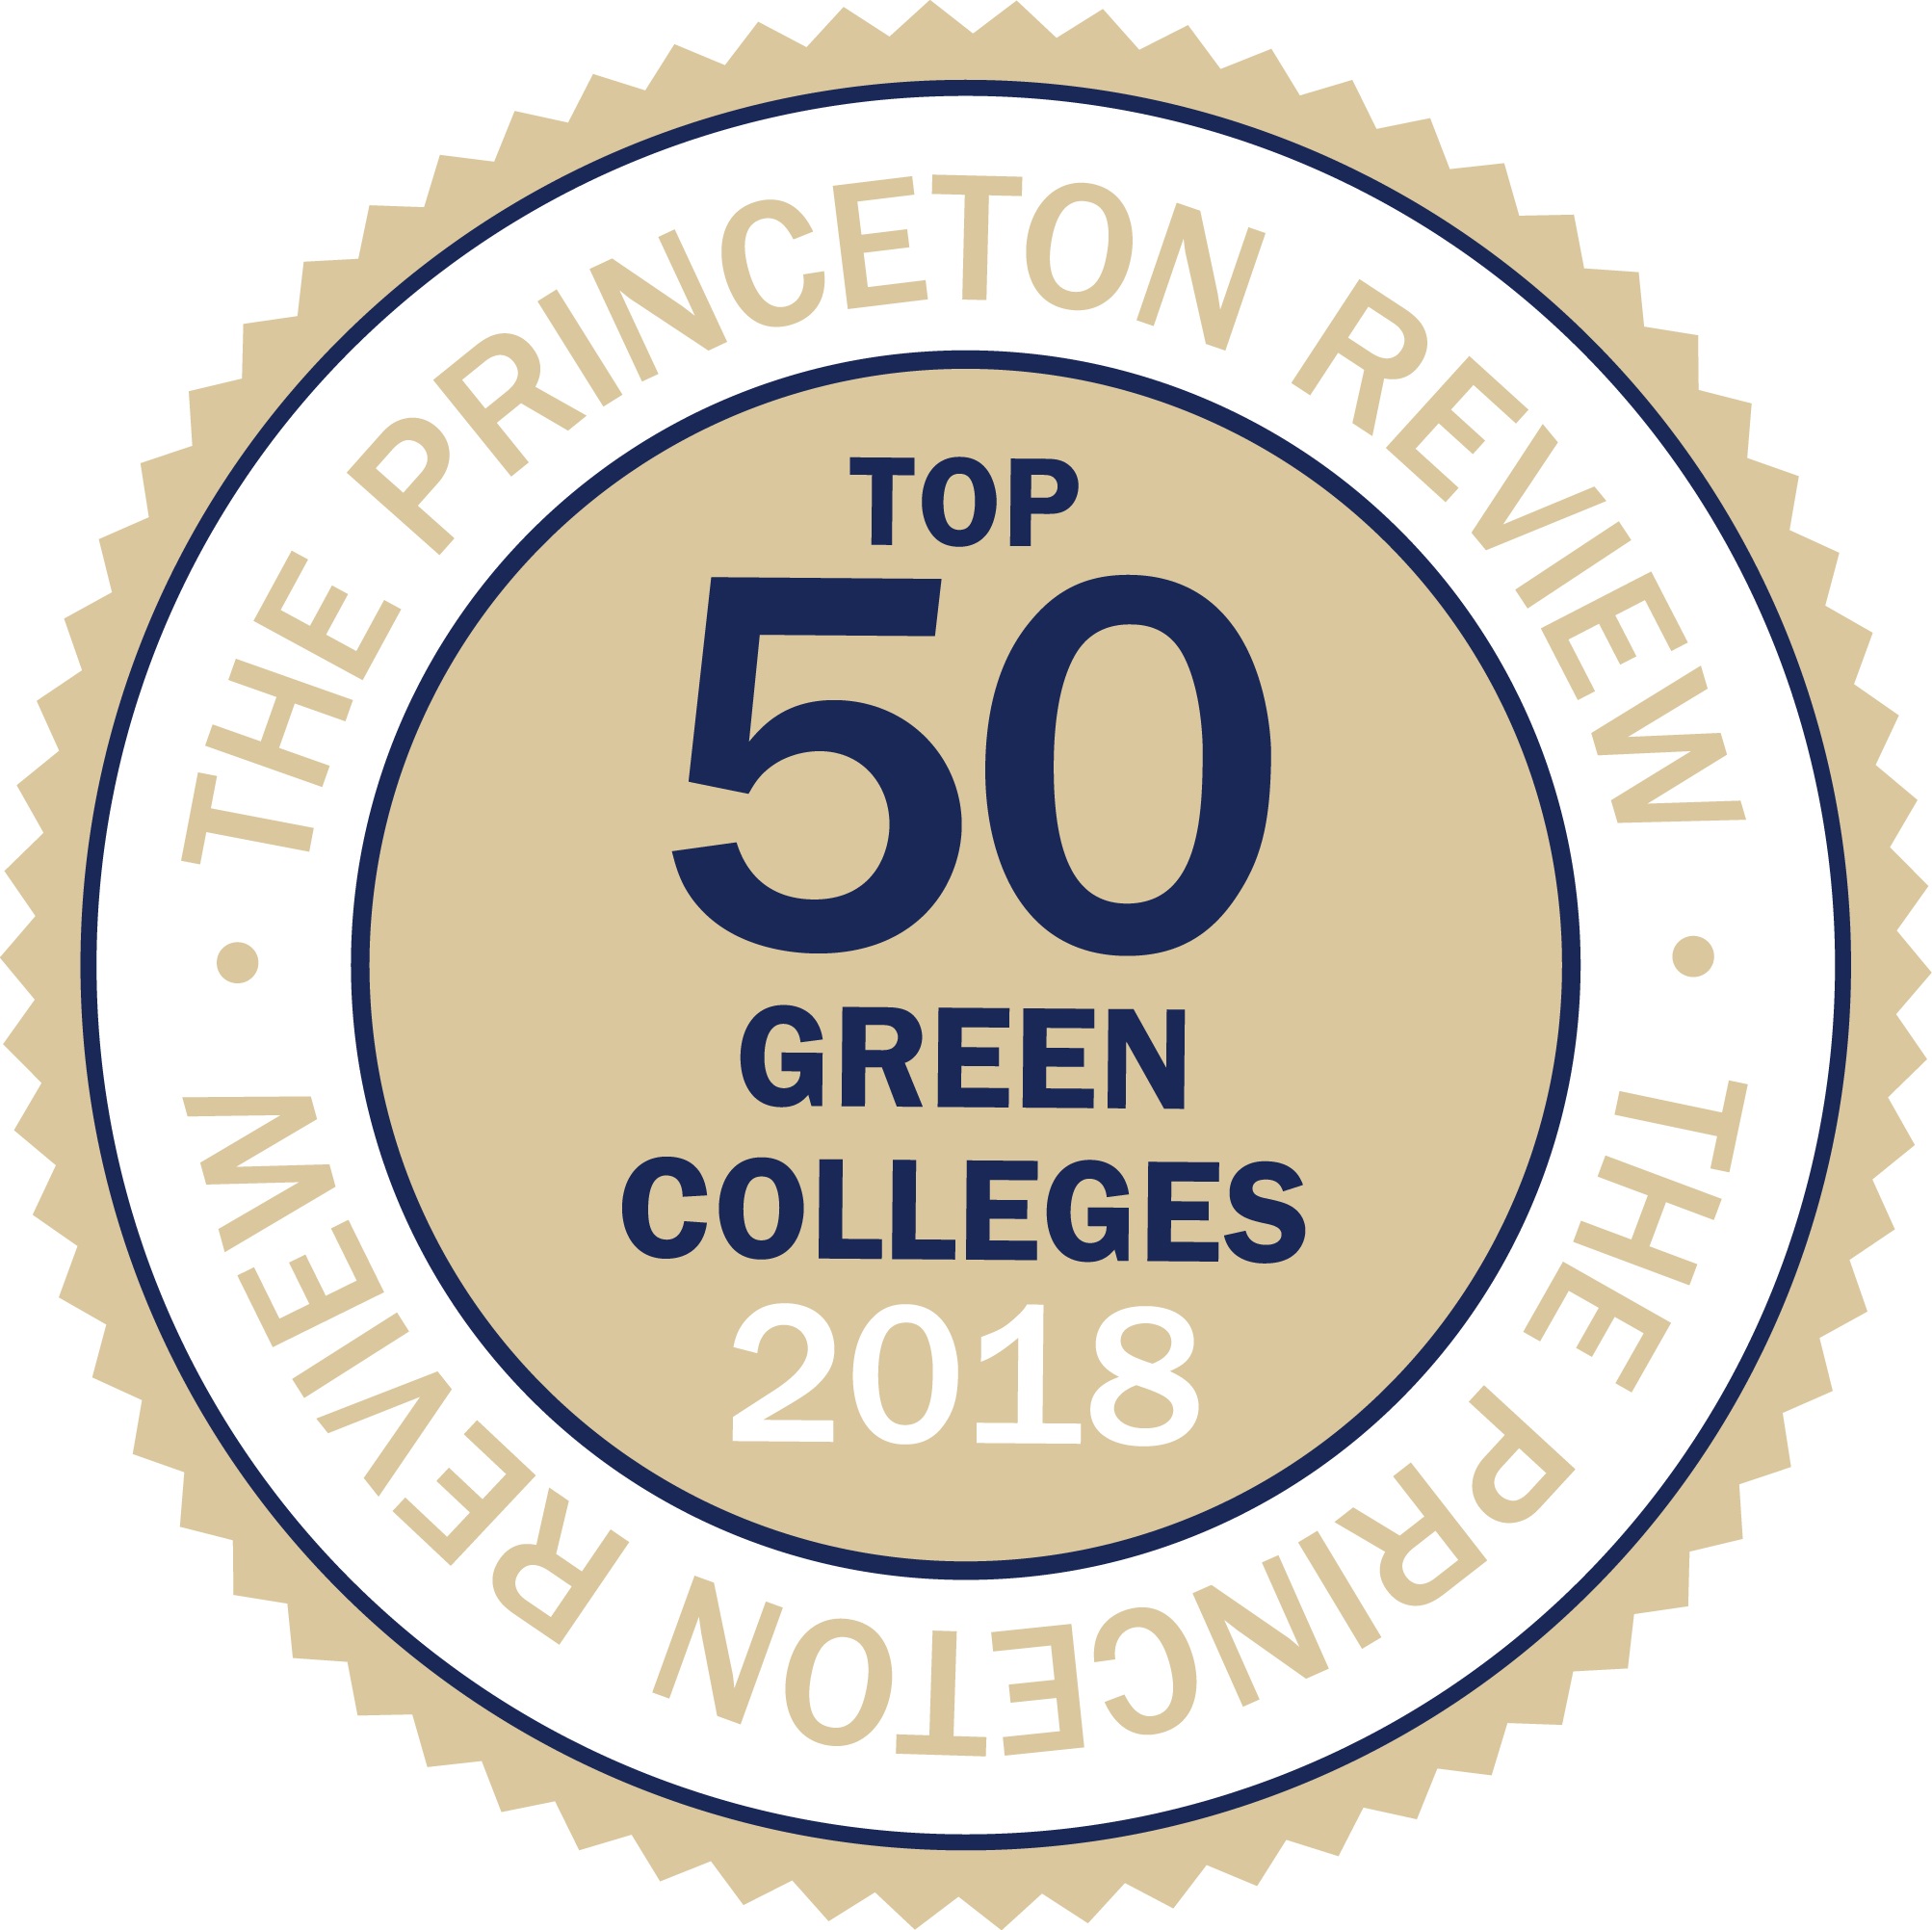 smcm ranks top 6 of 50 green colleges by Princeton review 2016-2017